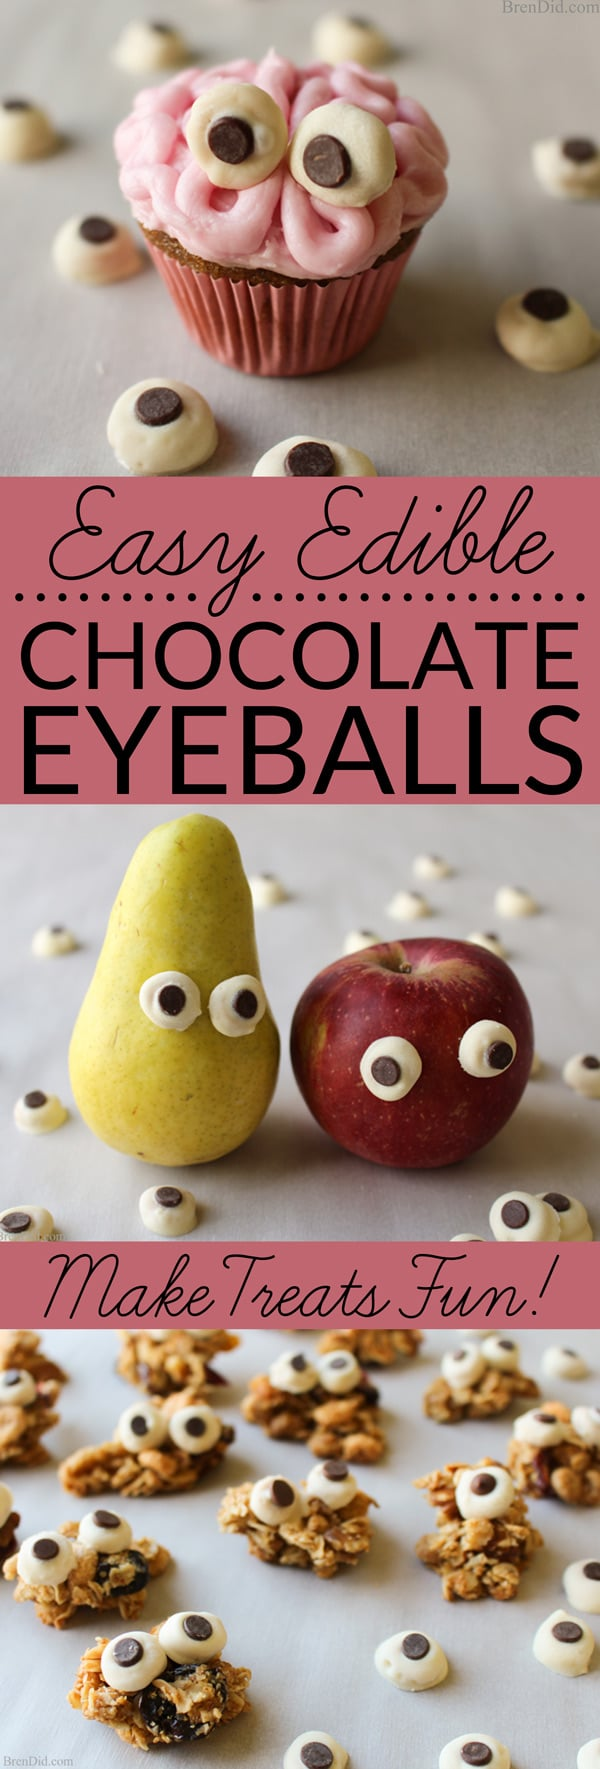 Easy Edible Chocolate Eyeballs - Delightful & tasty edible candy eyeballs made with white chocolate, mini chocolate chips and Cheerios dress up any treat.